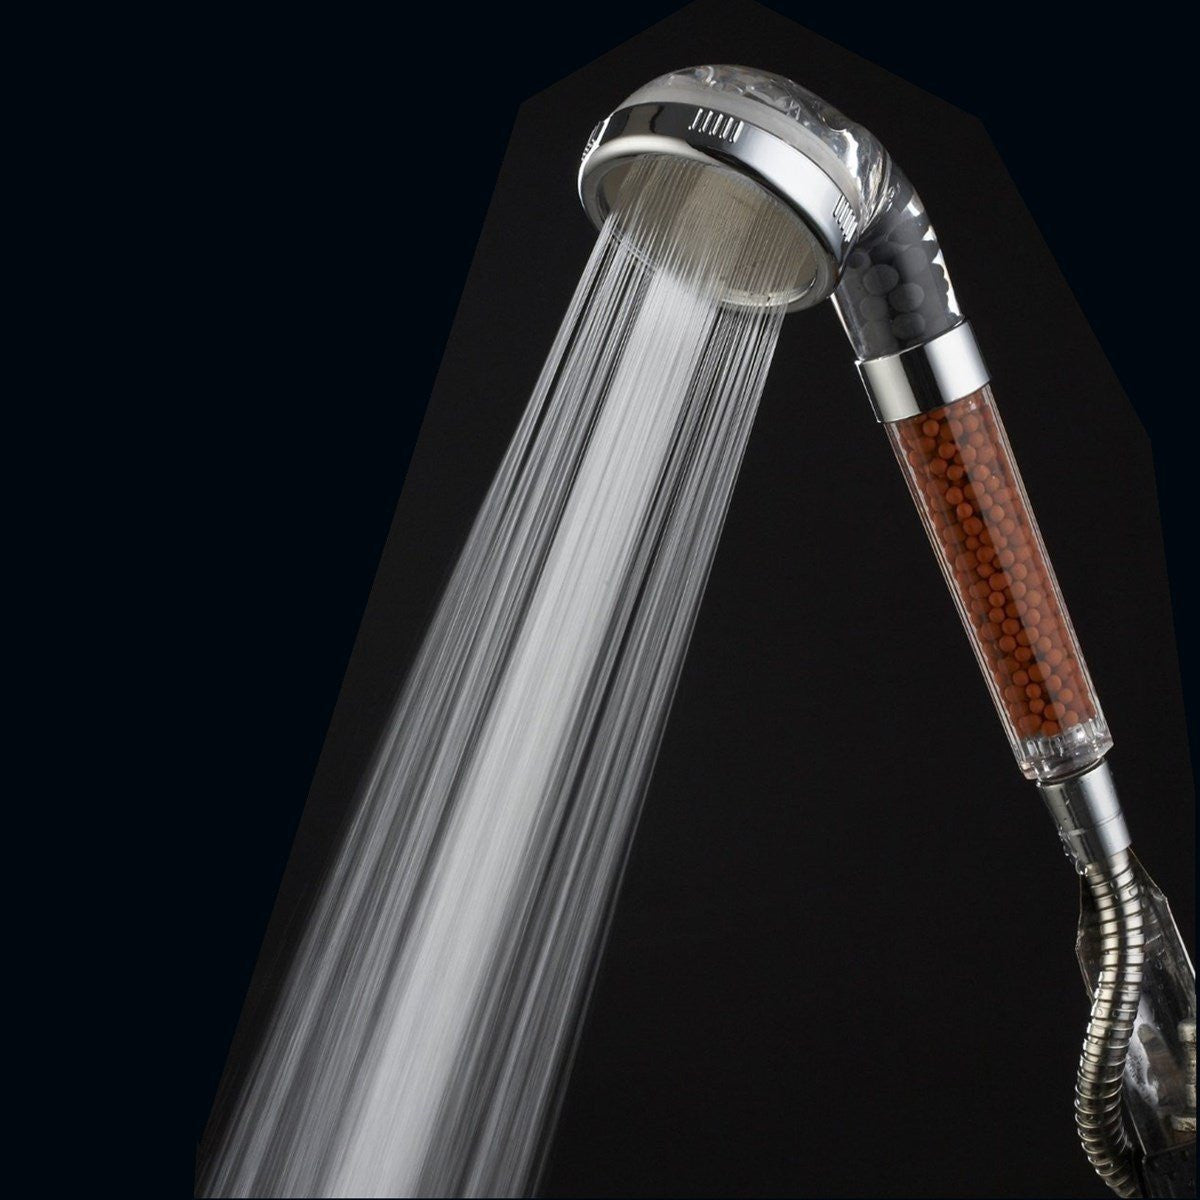 Rejuvinating Shower Nozzle - The Worldly Store